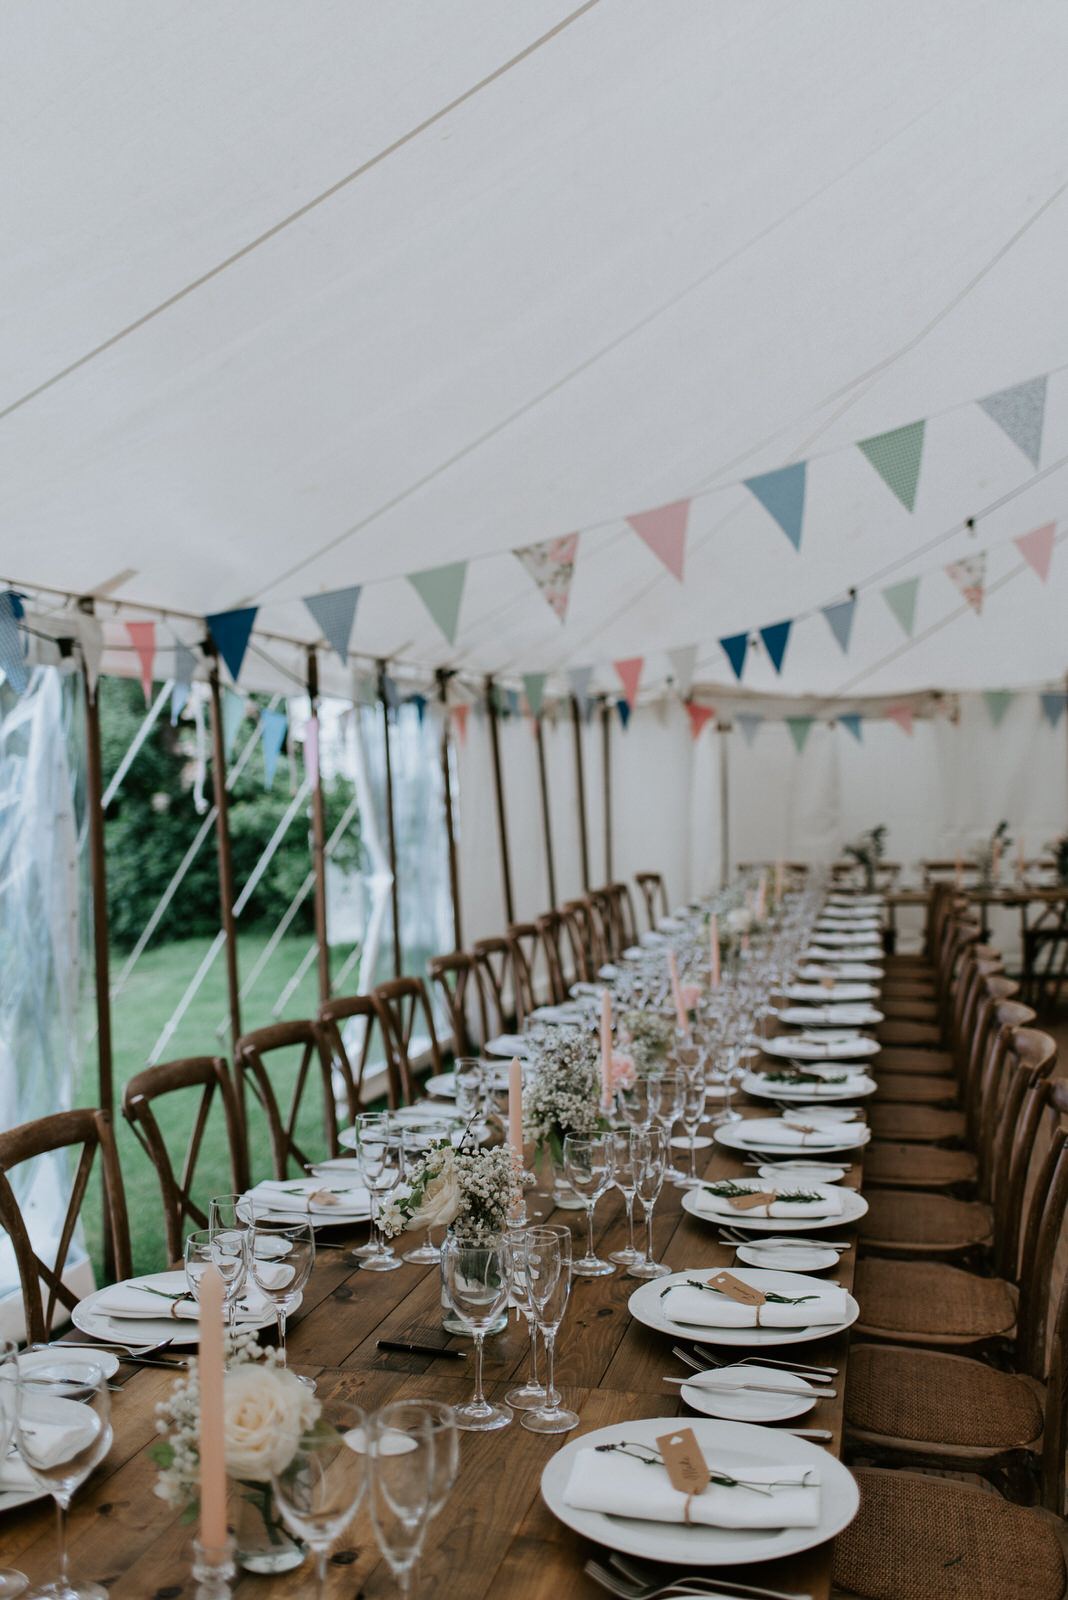 Intimate_Warwickshire_Countryside_Wedding_UK_30.JPG